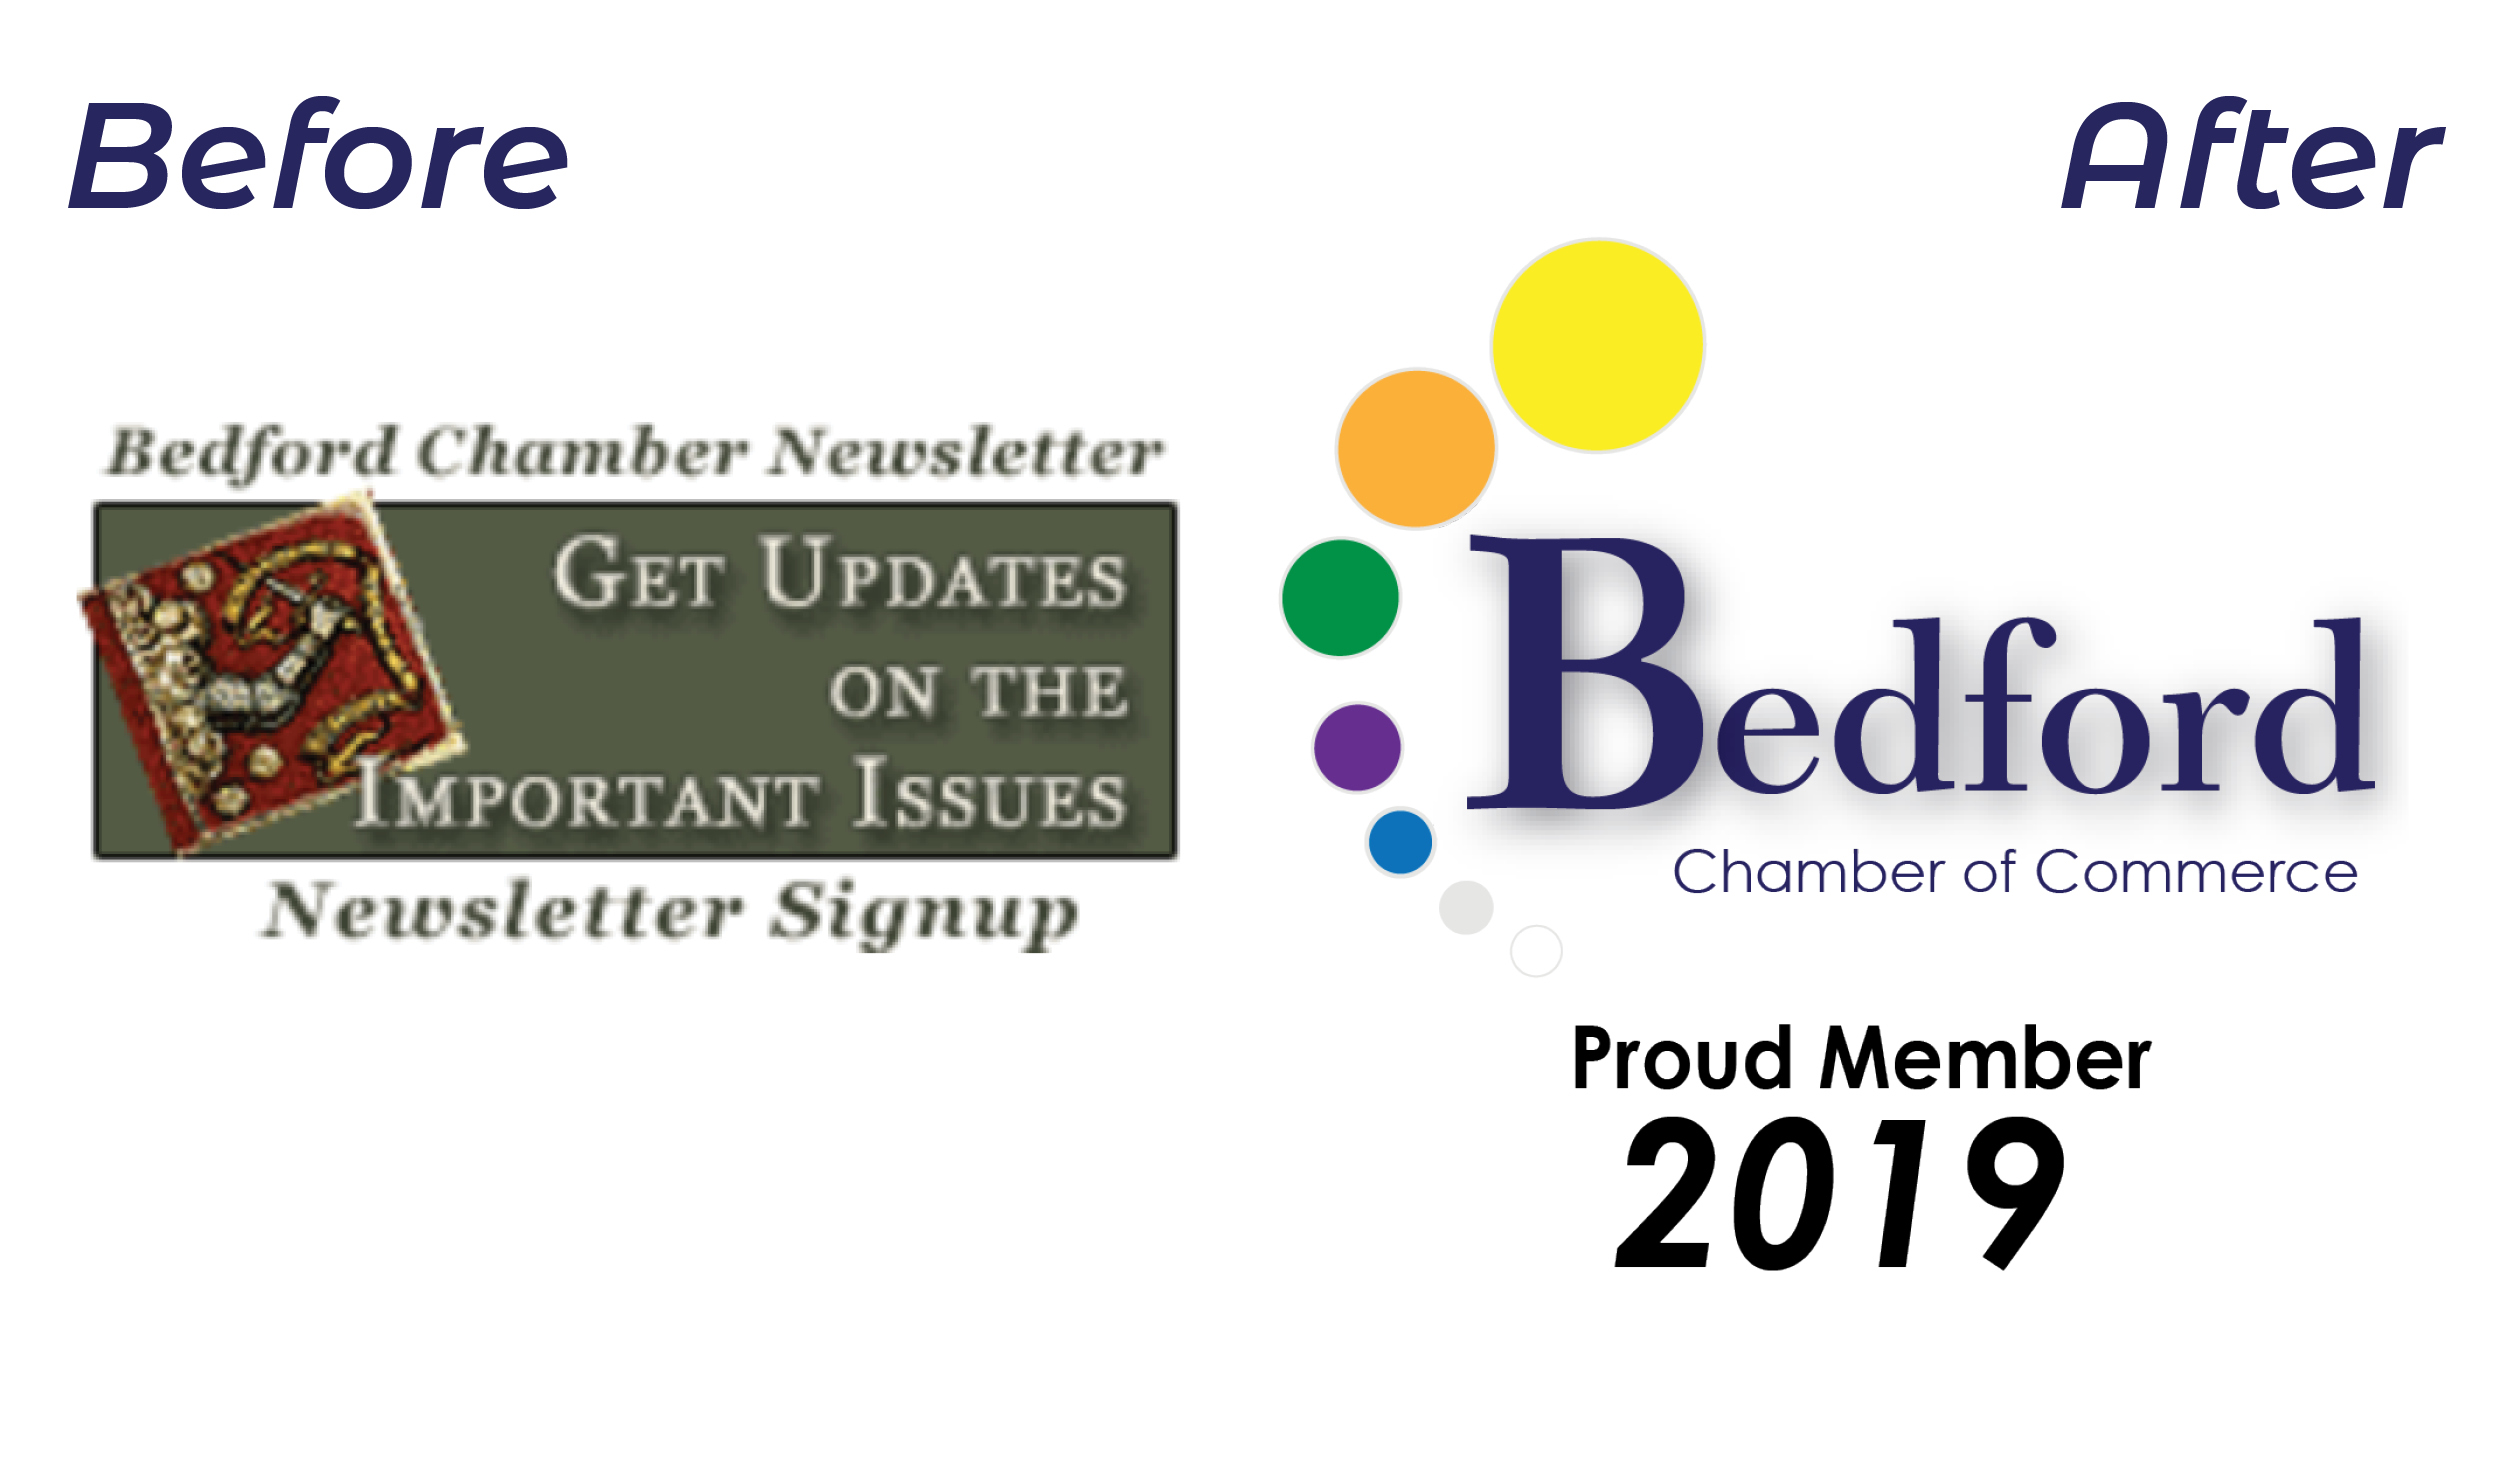 Rebranding - Bringing the Bedford Chamber of Commerce into the 21st century